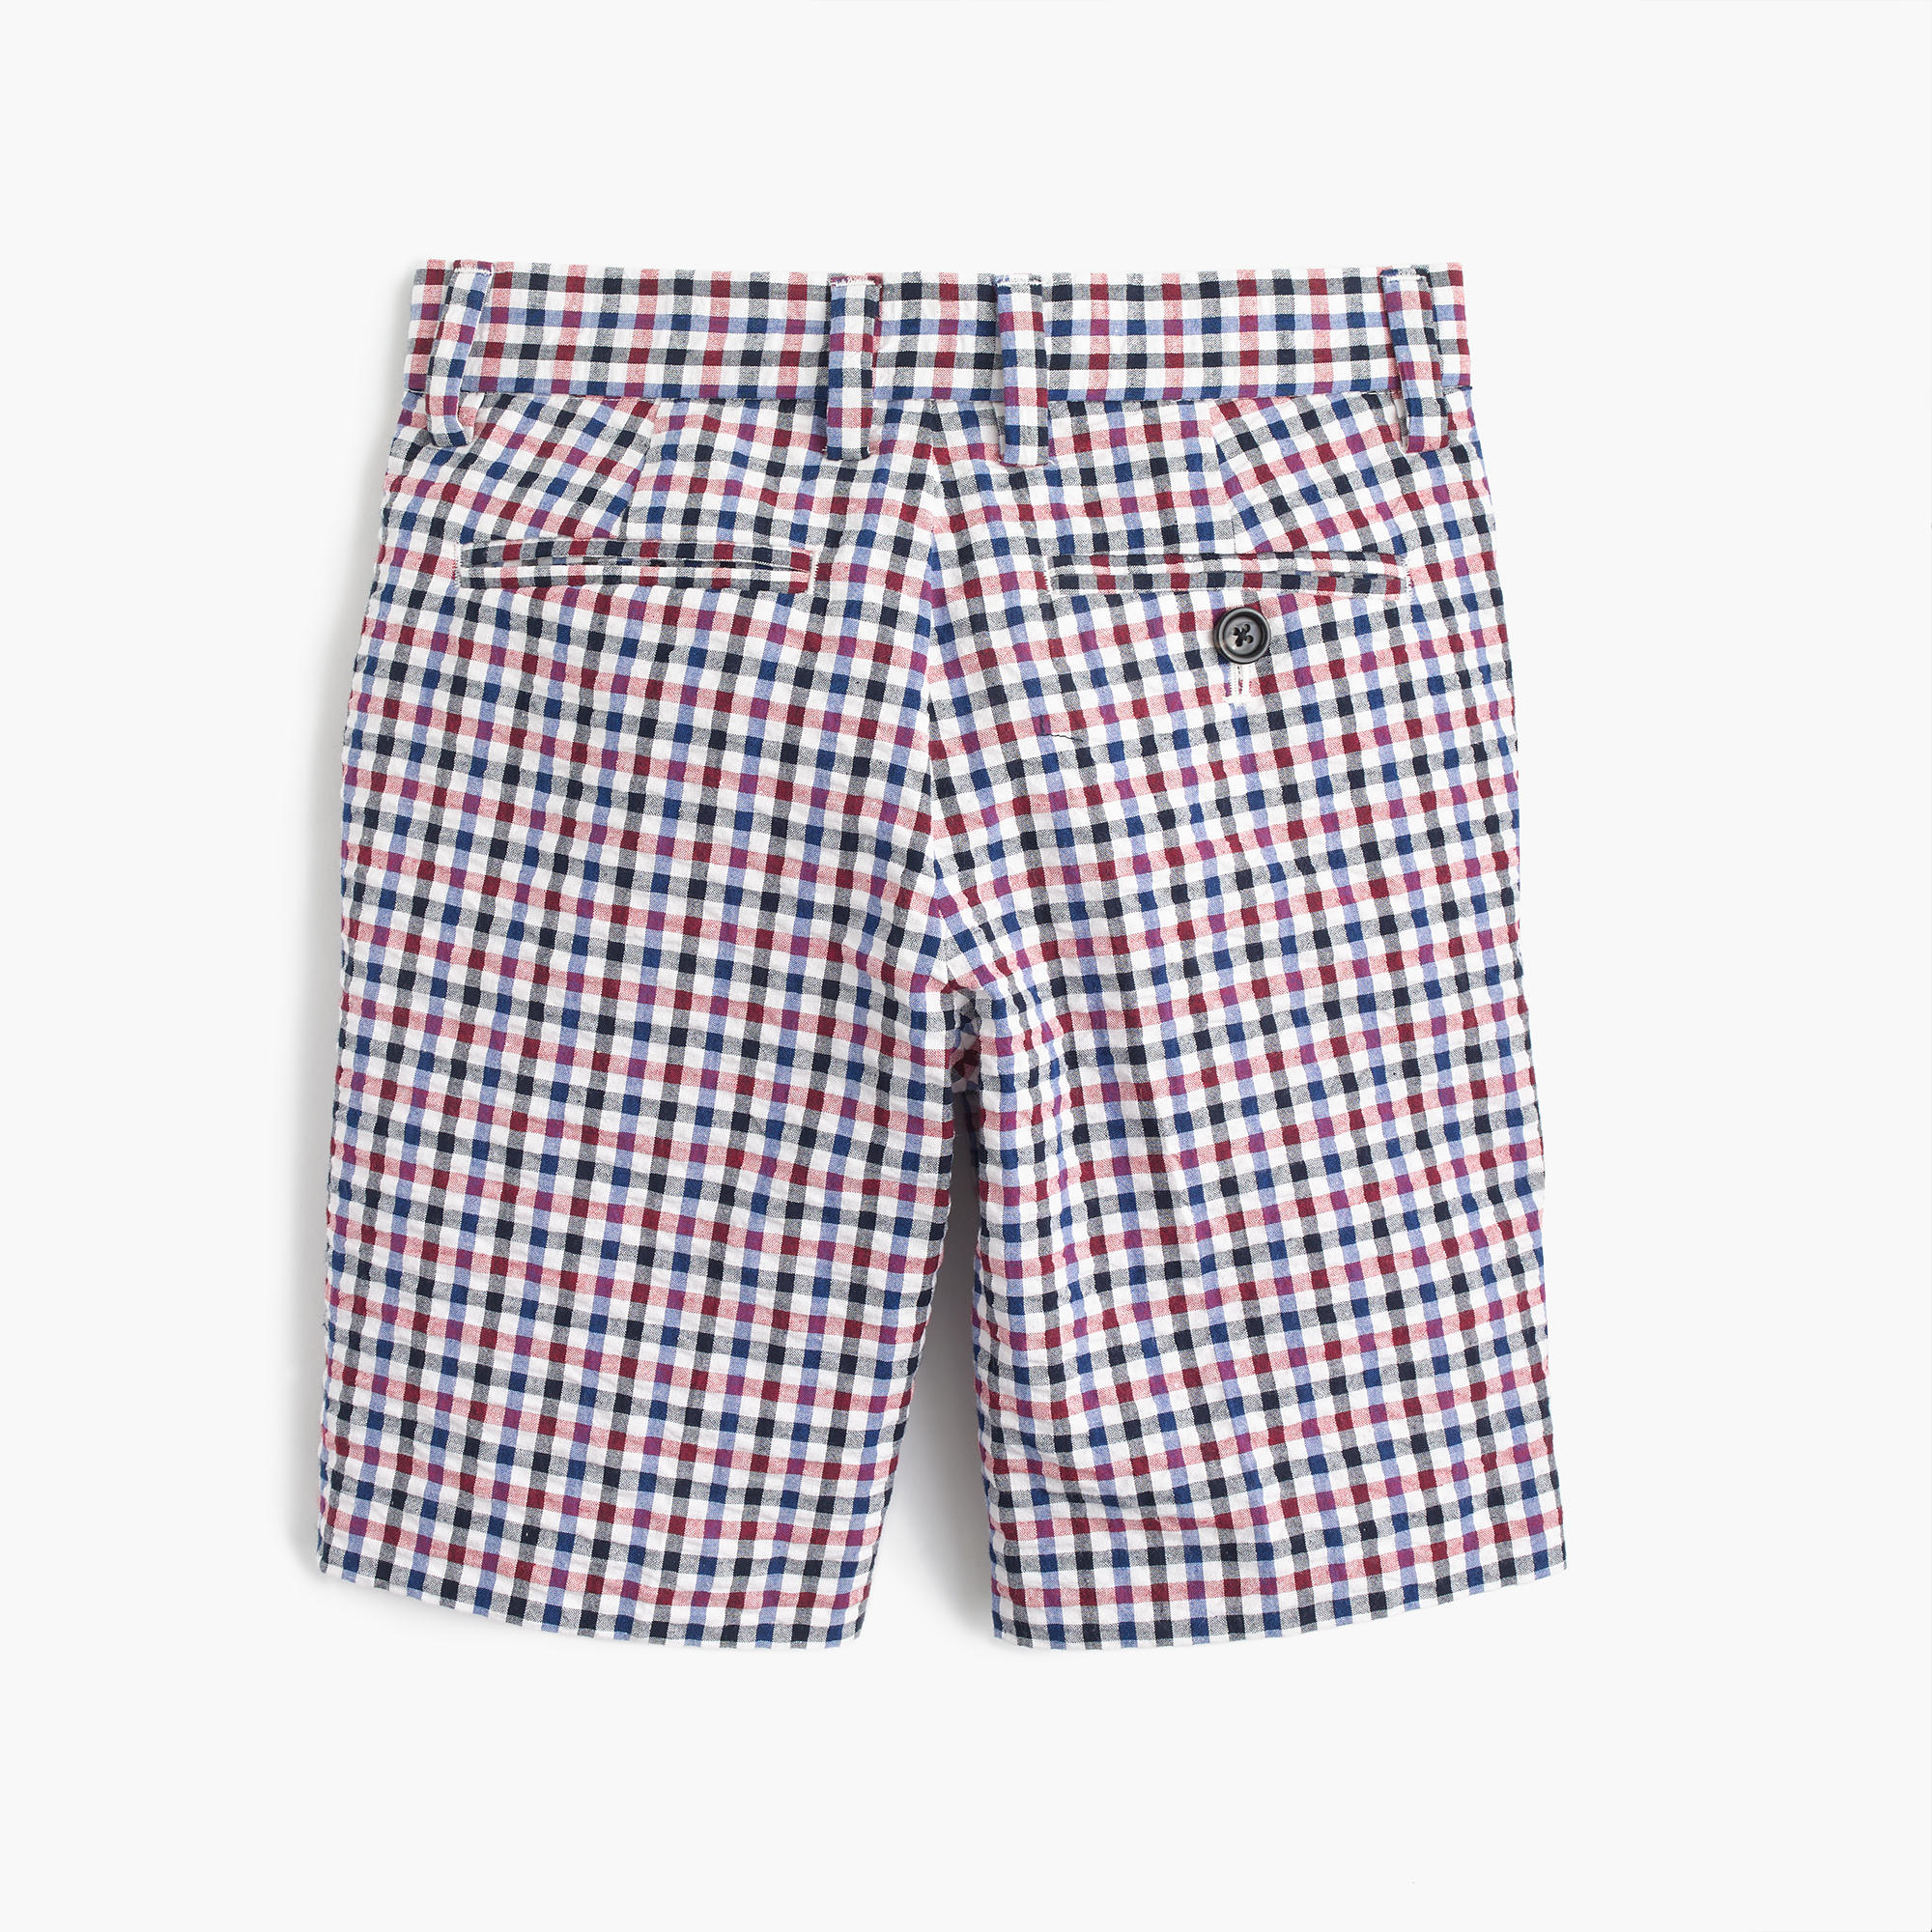 https://i.s-jcrew.com/is/image/jcrew/G2889_WU7999_...